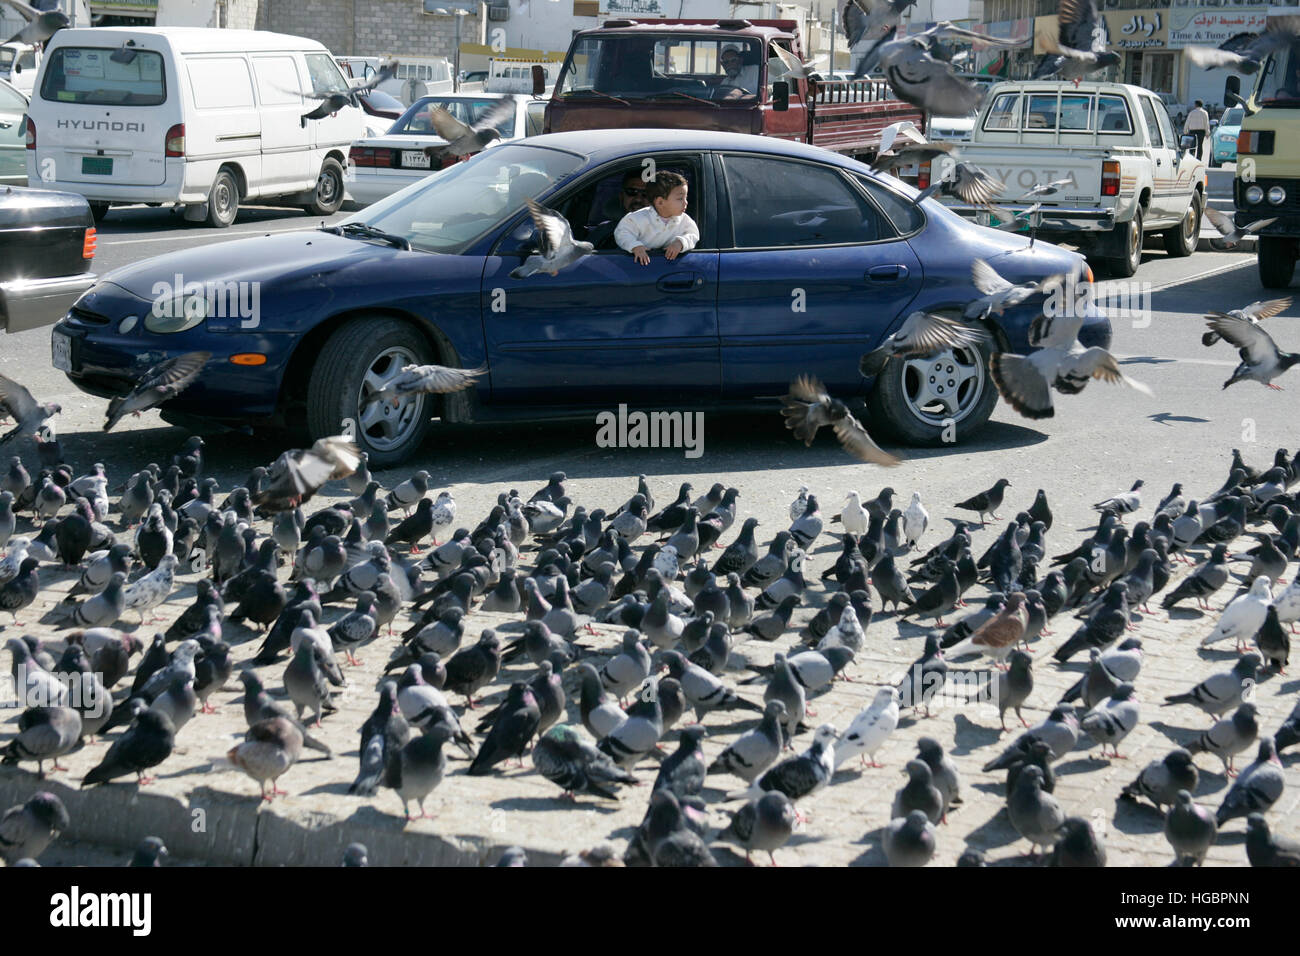 Qatar, Doha, little boy looking out of a car window to a large number of pigeons on the ground Stock Photo